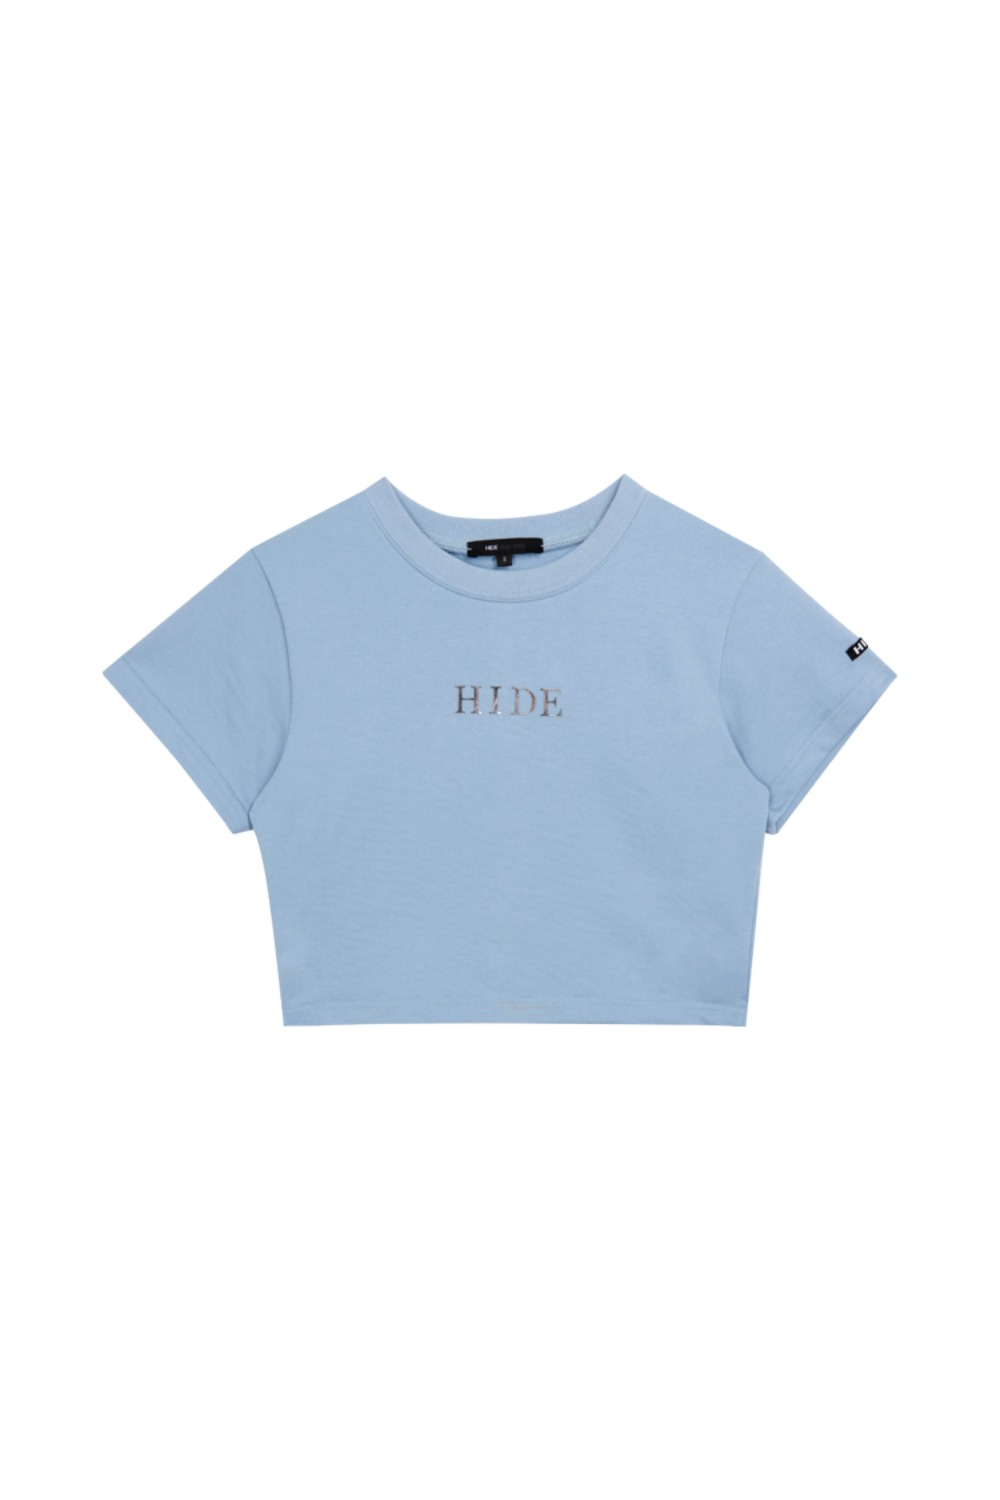 HIDE Mirror Crop Top SKY BLUE